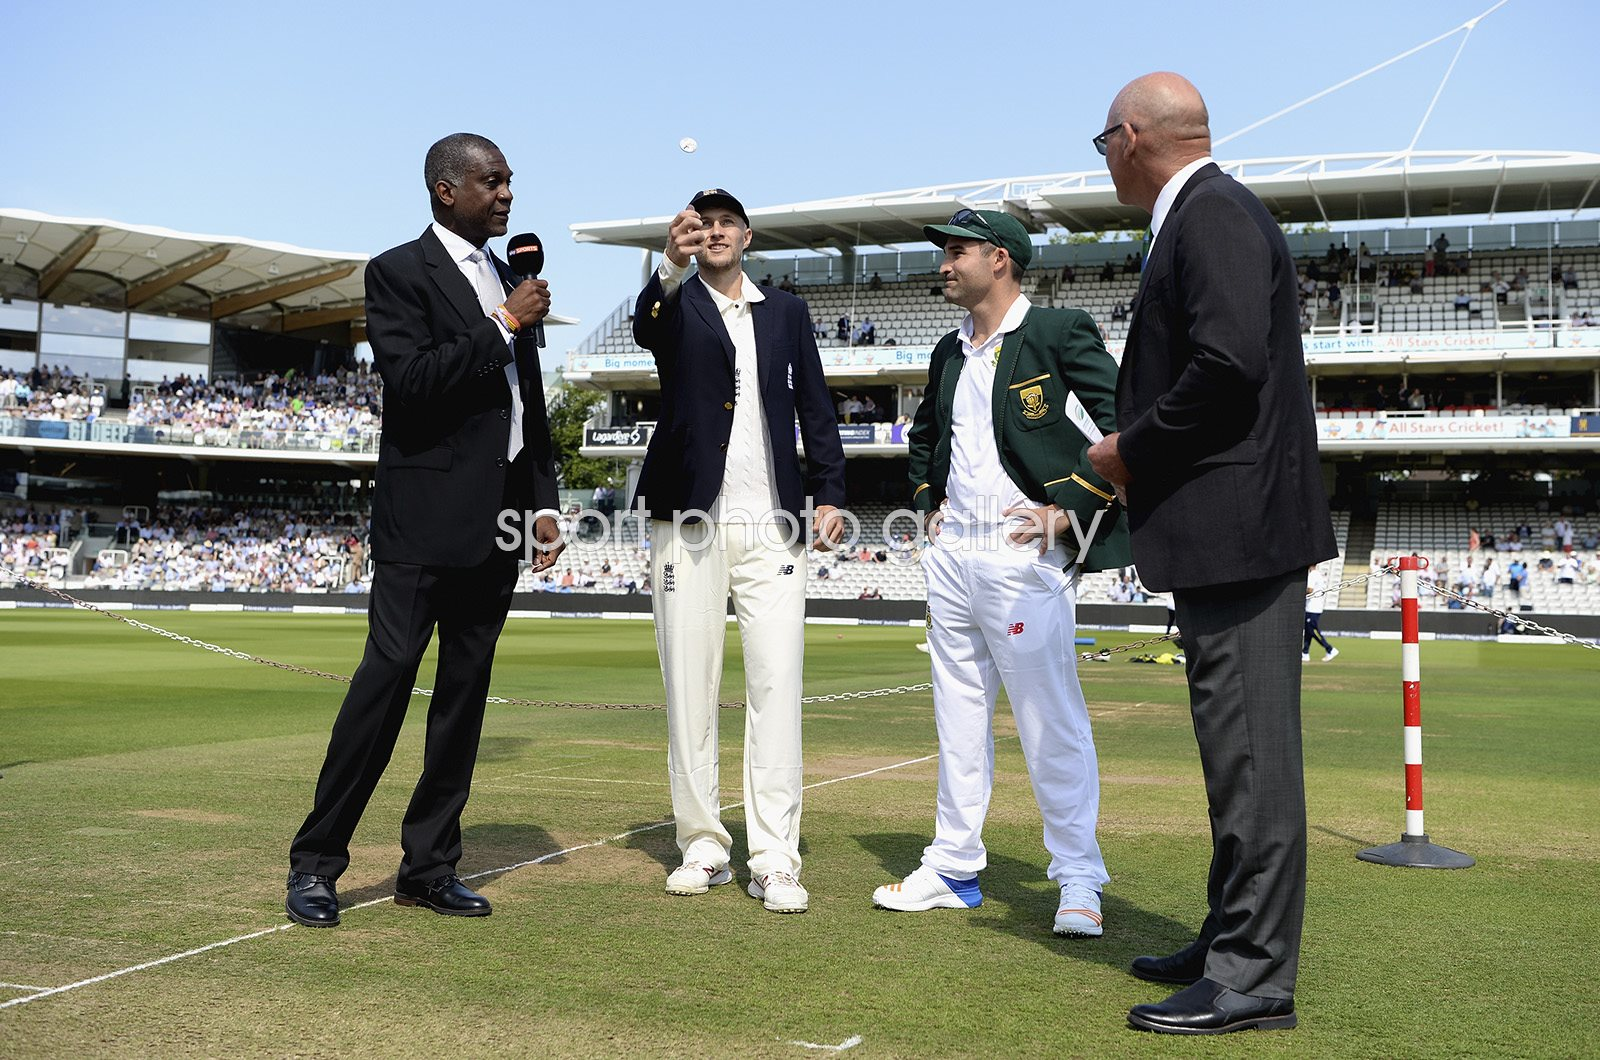 New Captains Joe Root England & Dean Elgar South Africa Lord's 2017